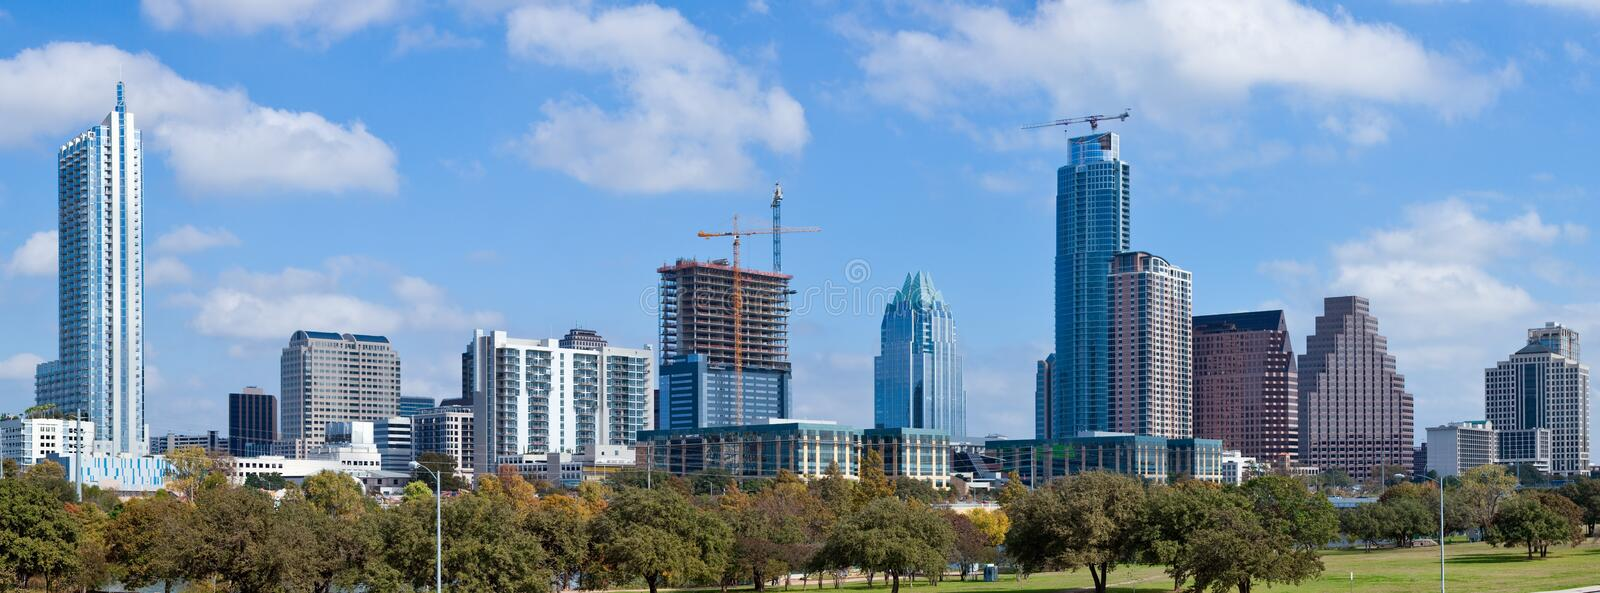 Skyline Austin-, Texas lizenzfreie stockfotos